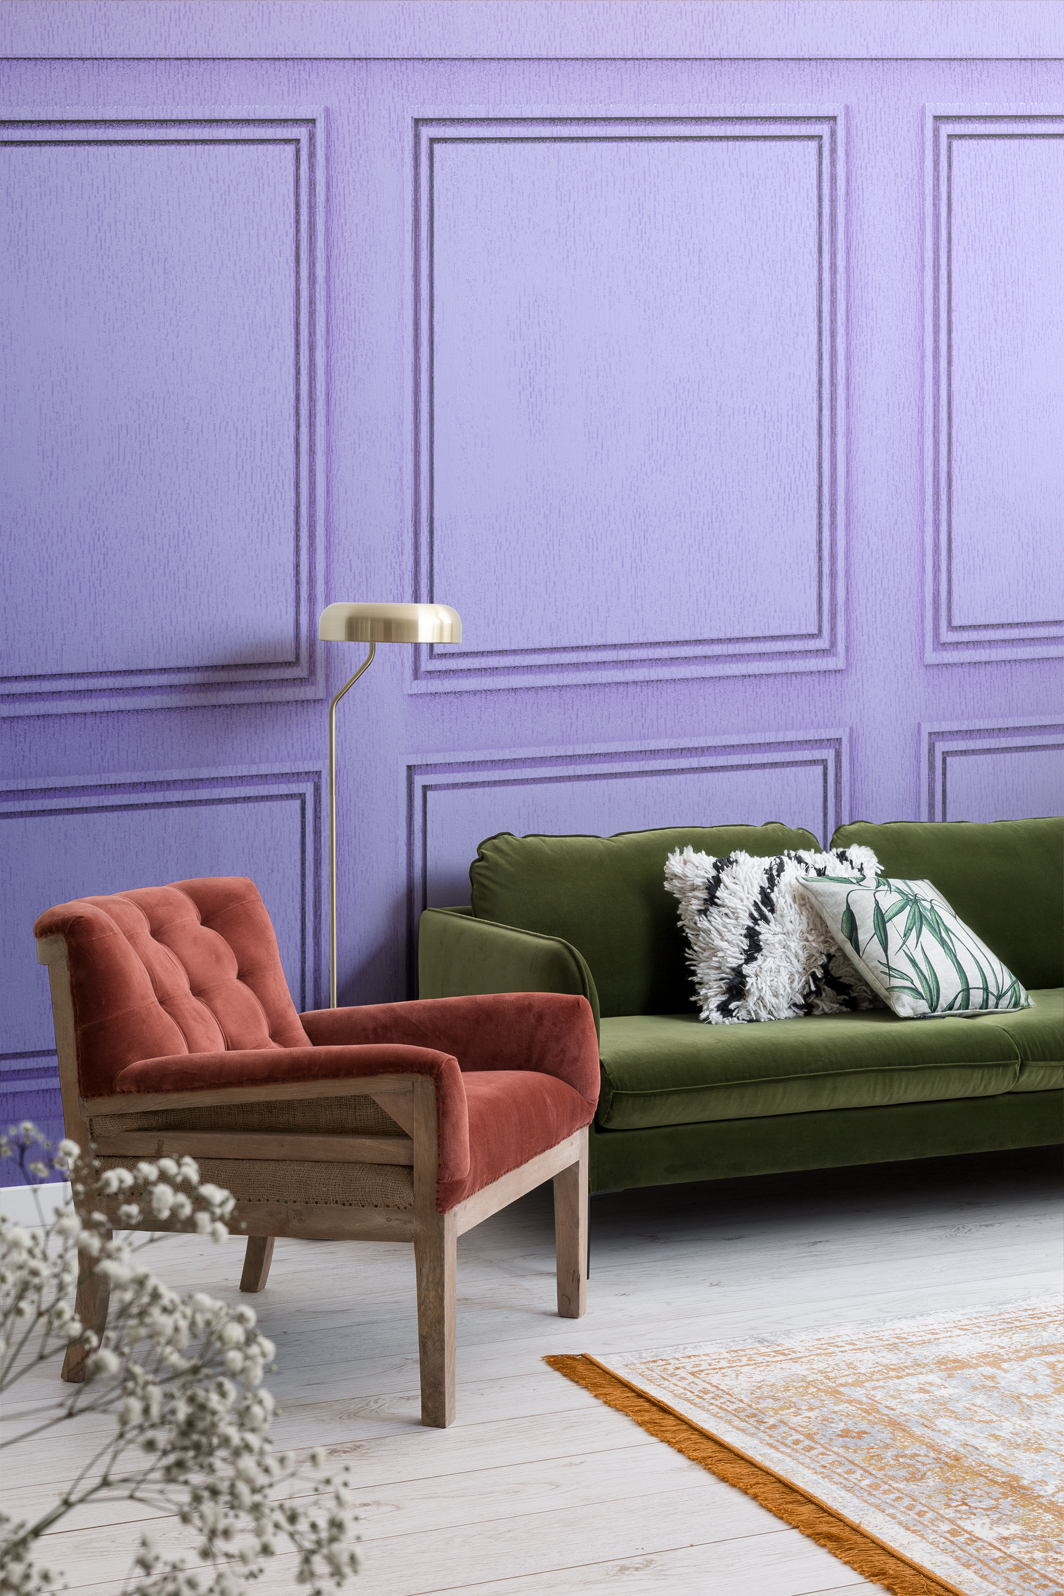 Apartment living space with the purple